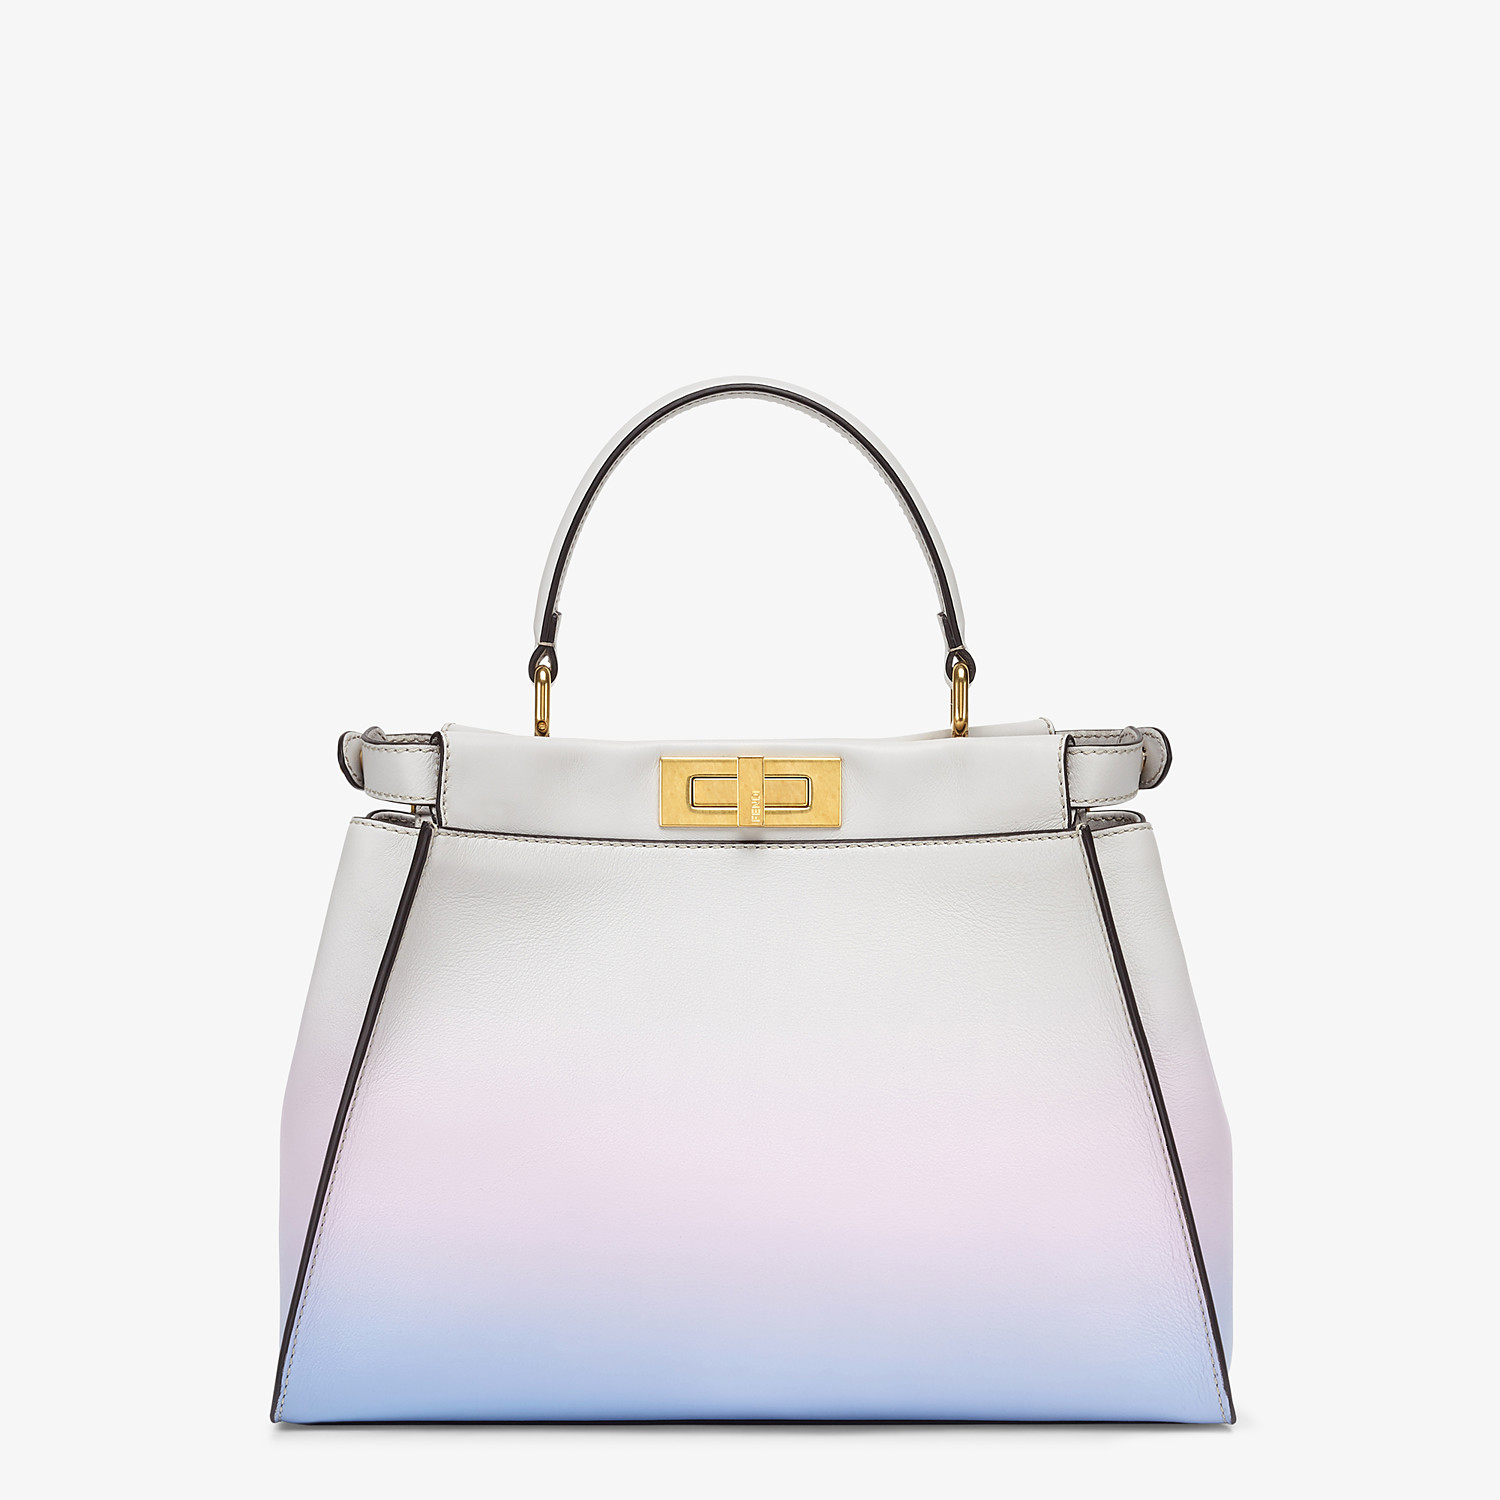 FENDI PEEKABOO ICONIC MEDIUM - Leather bag in graduated colors - view 4 detail